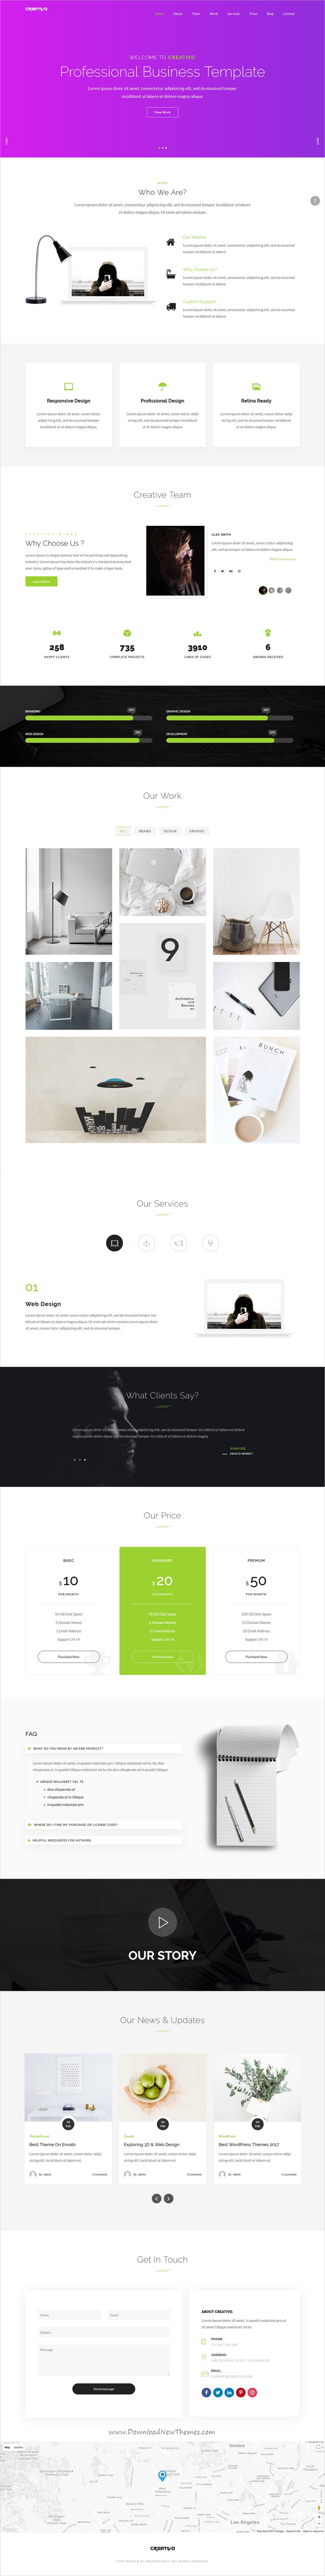 Creativo is clean and modern parallaz design 7in1 responsive #HTML template for #startup business, web #studio and creative agencies website download now..